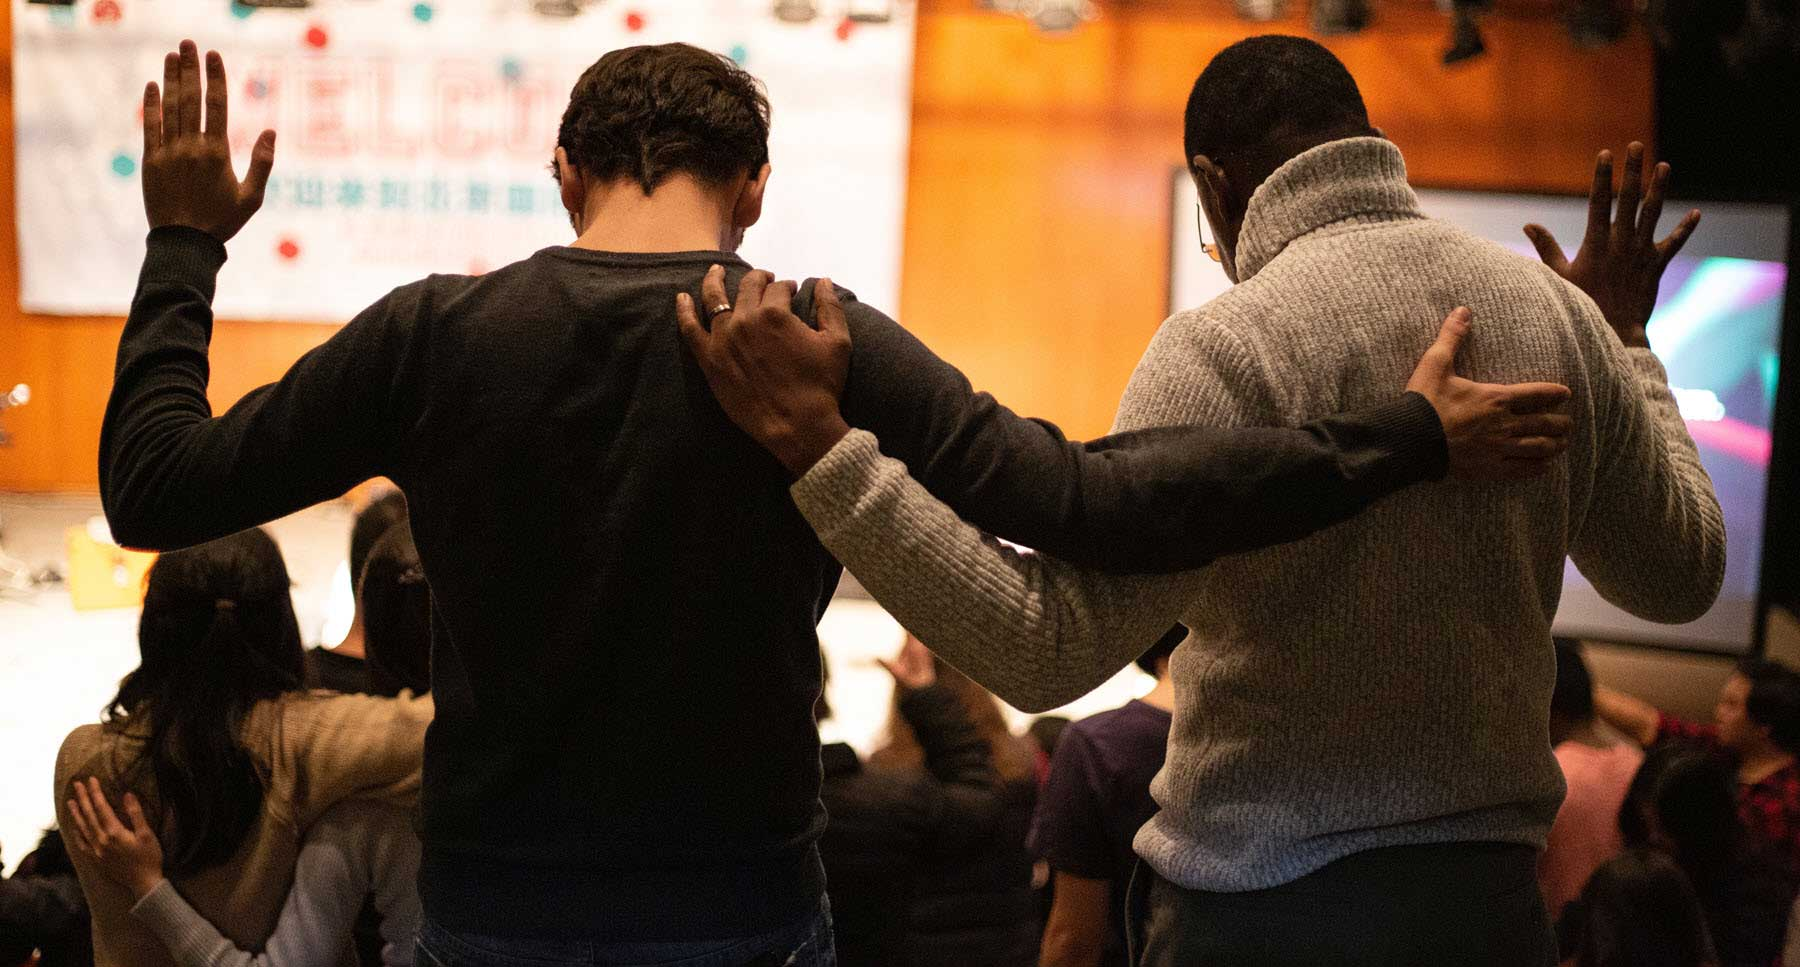 two-guys-praying-together-to-encourage-a-friend-in-their-faith